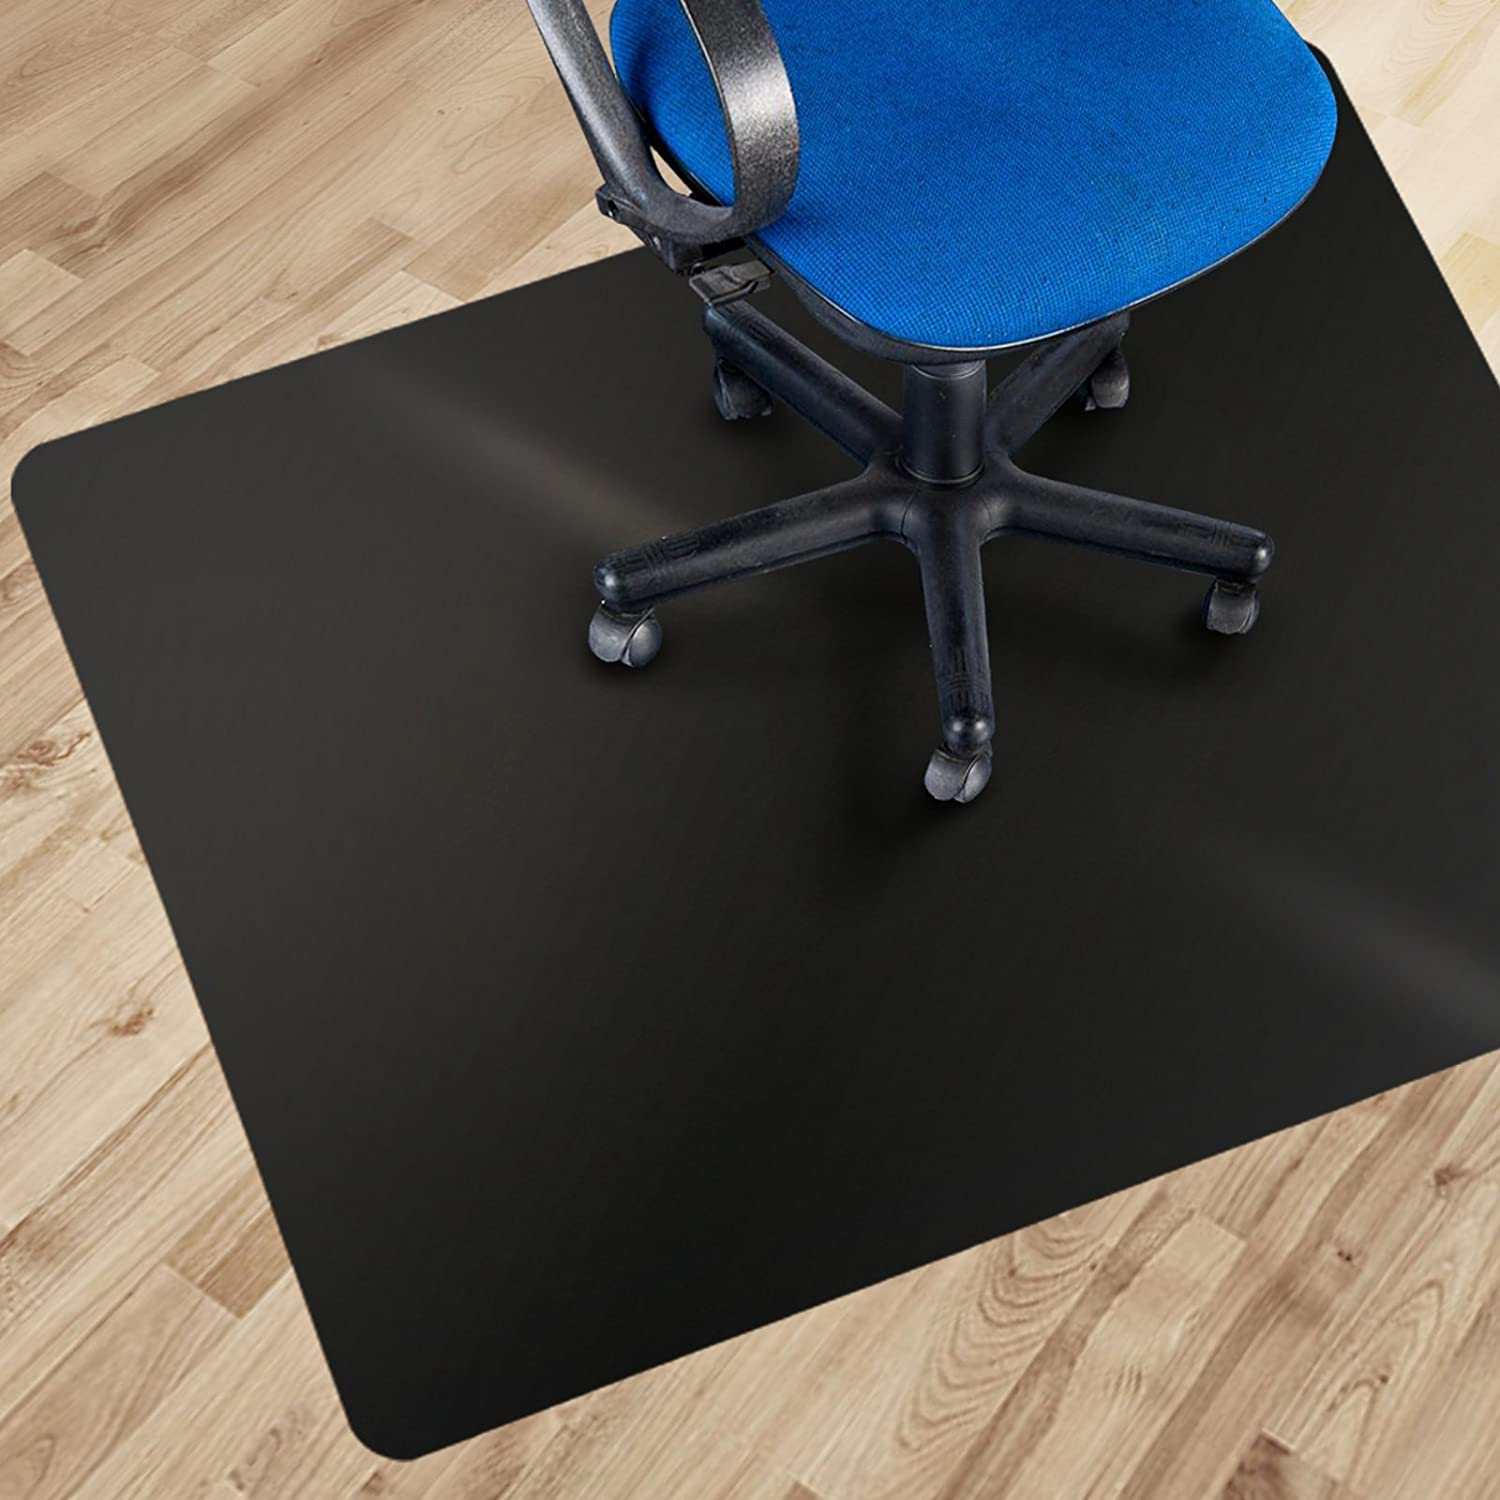 amazon com office marshal black polycarbonate office chair mat